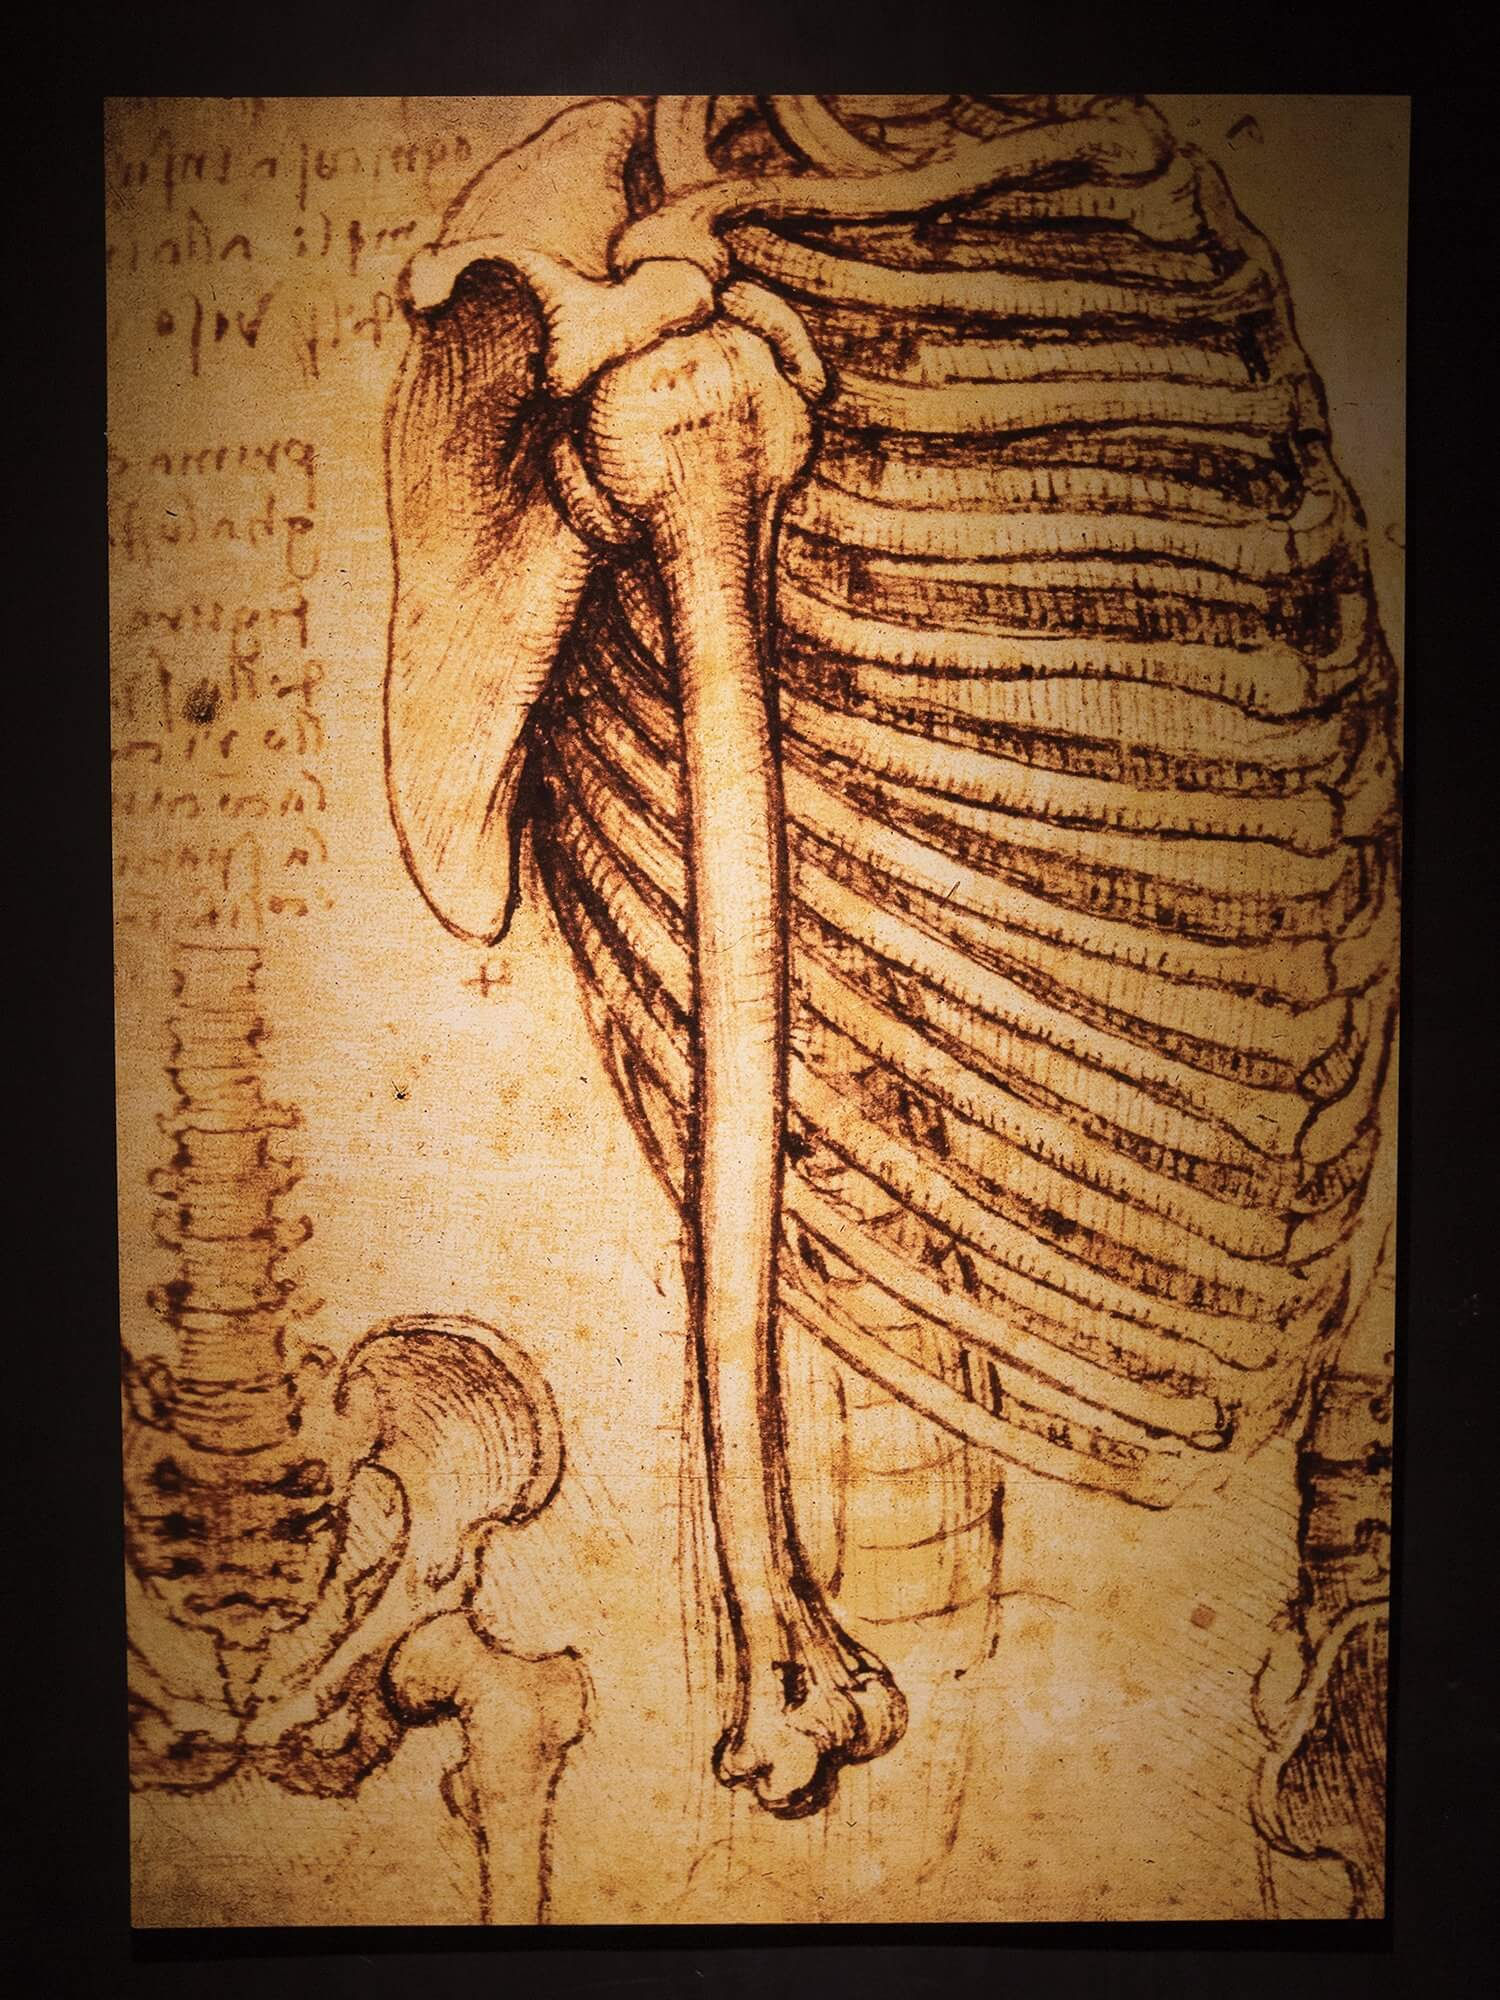 Copies of anatomical sketches by Leonardo da Vinci are on display at Moody Gardens.